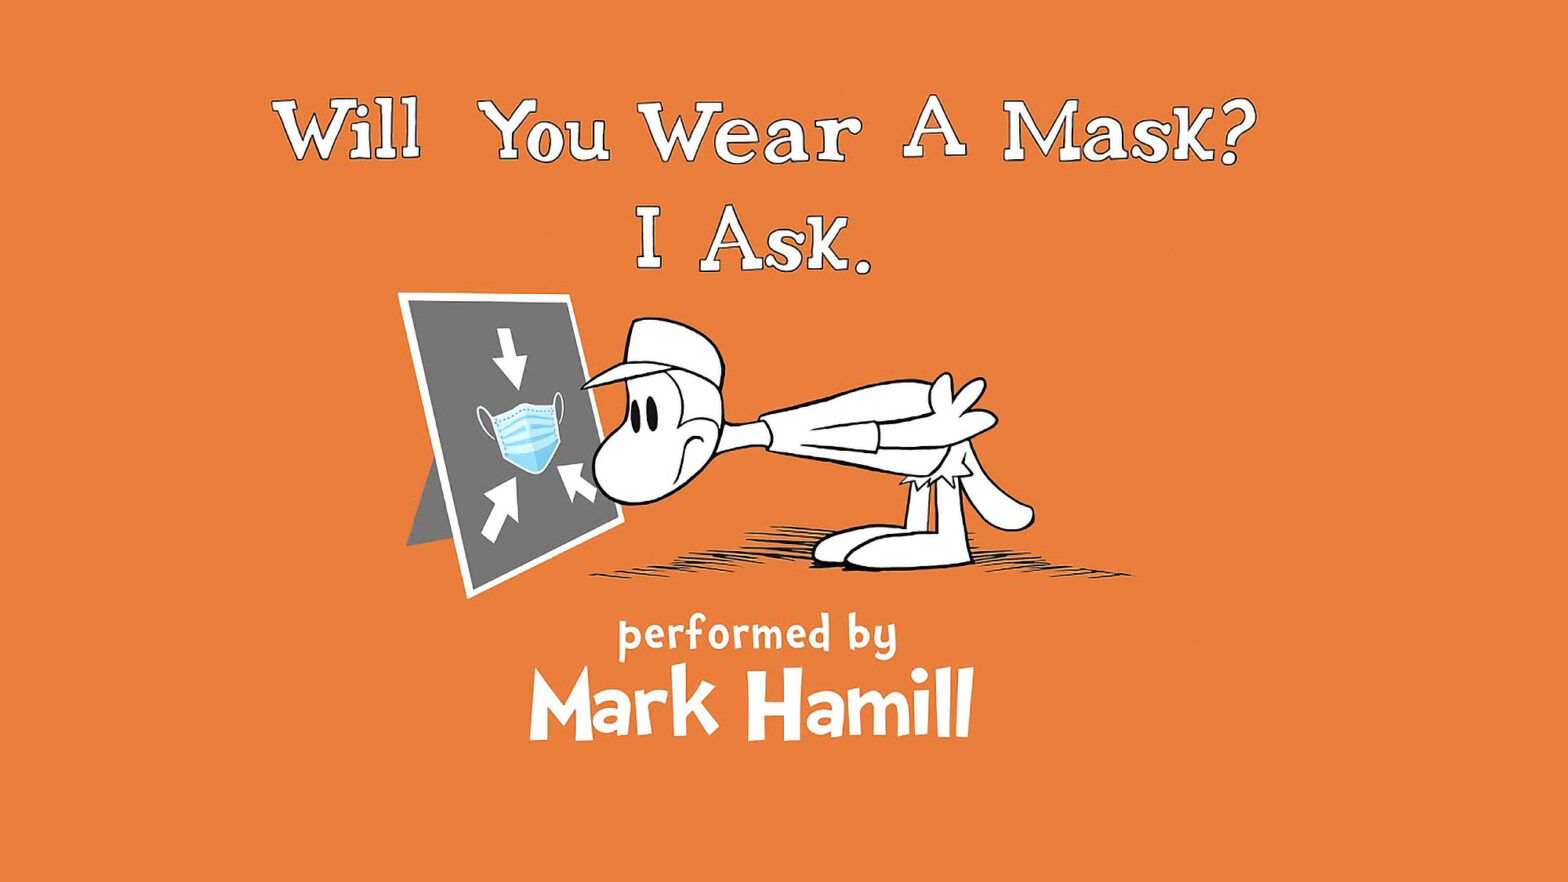 Will You Wear A Mask Performed by Mark Hamill